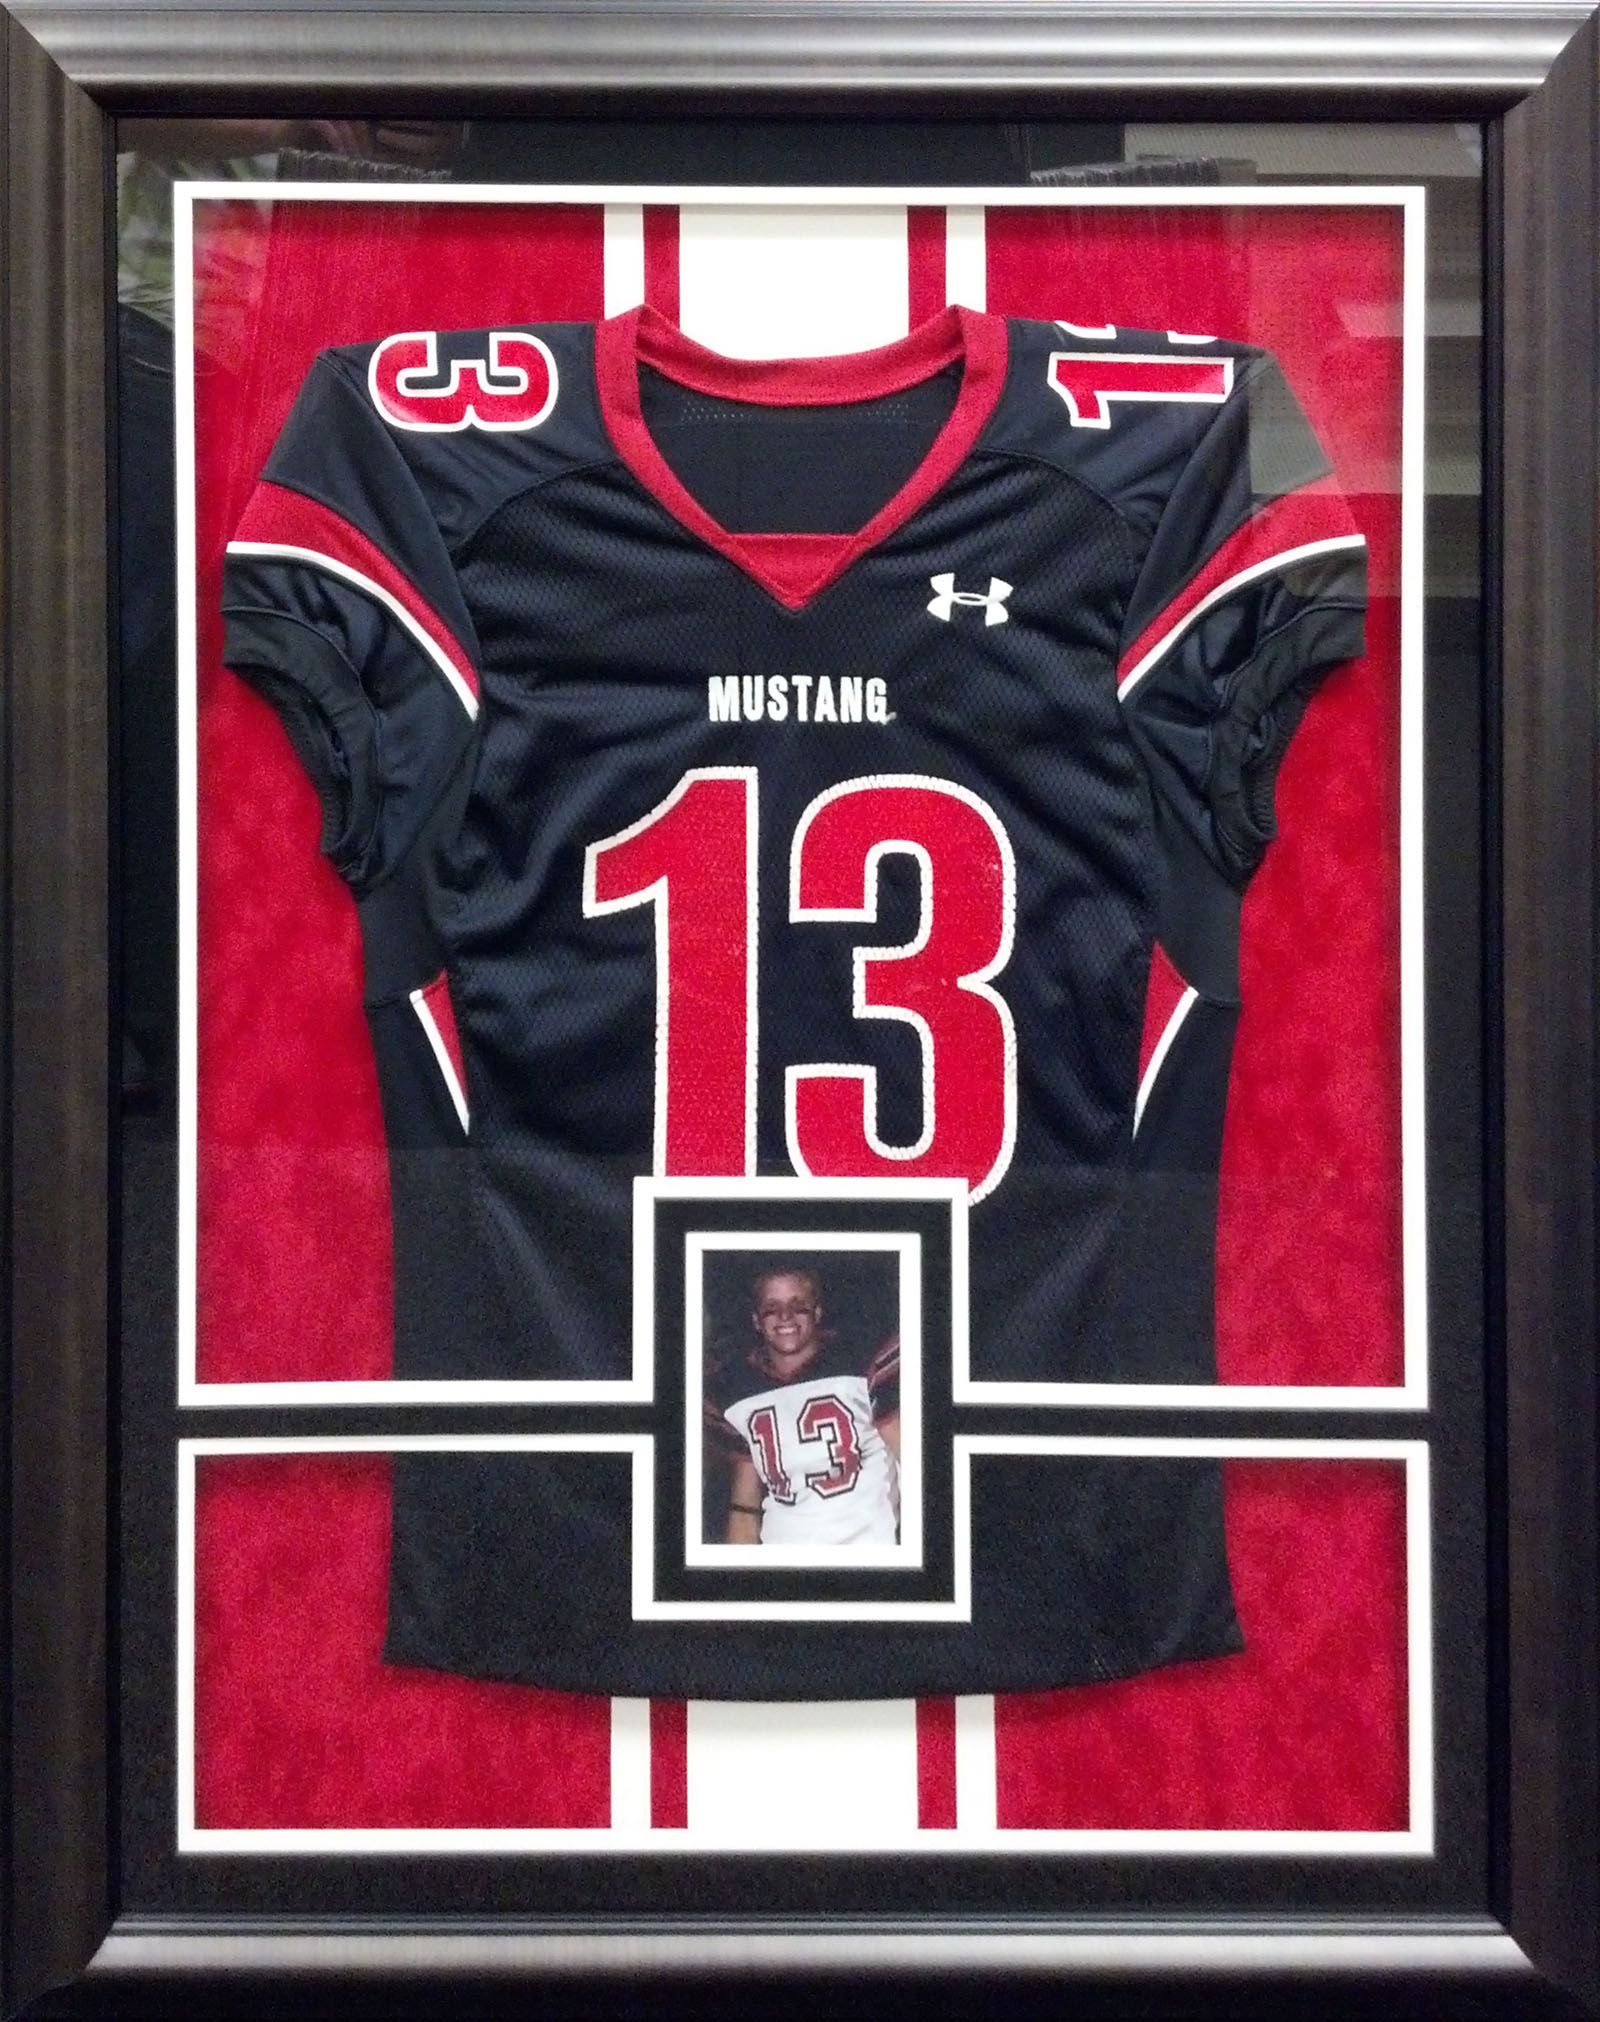 This Football Jersey Is Mounted On Inlaid Mats And Is